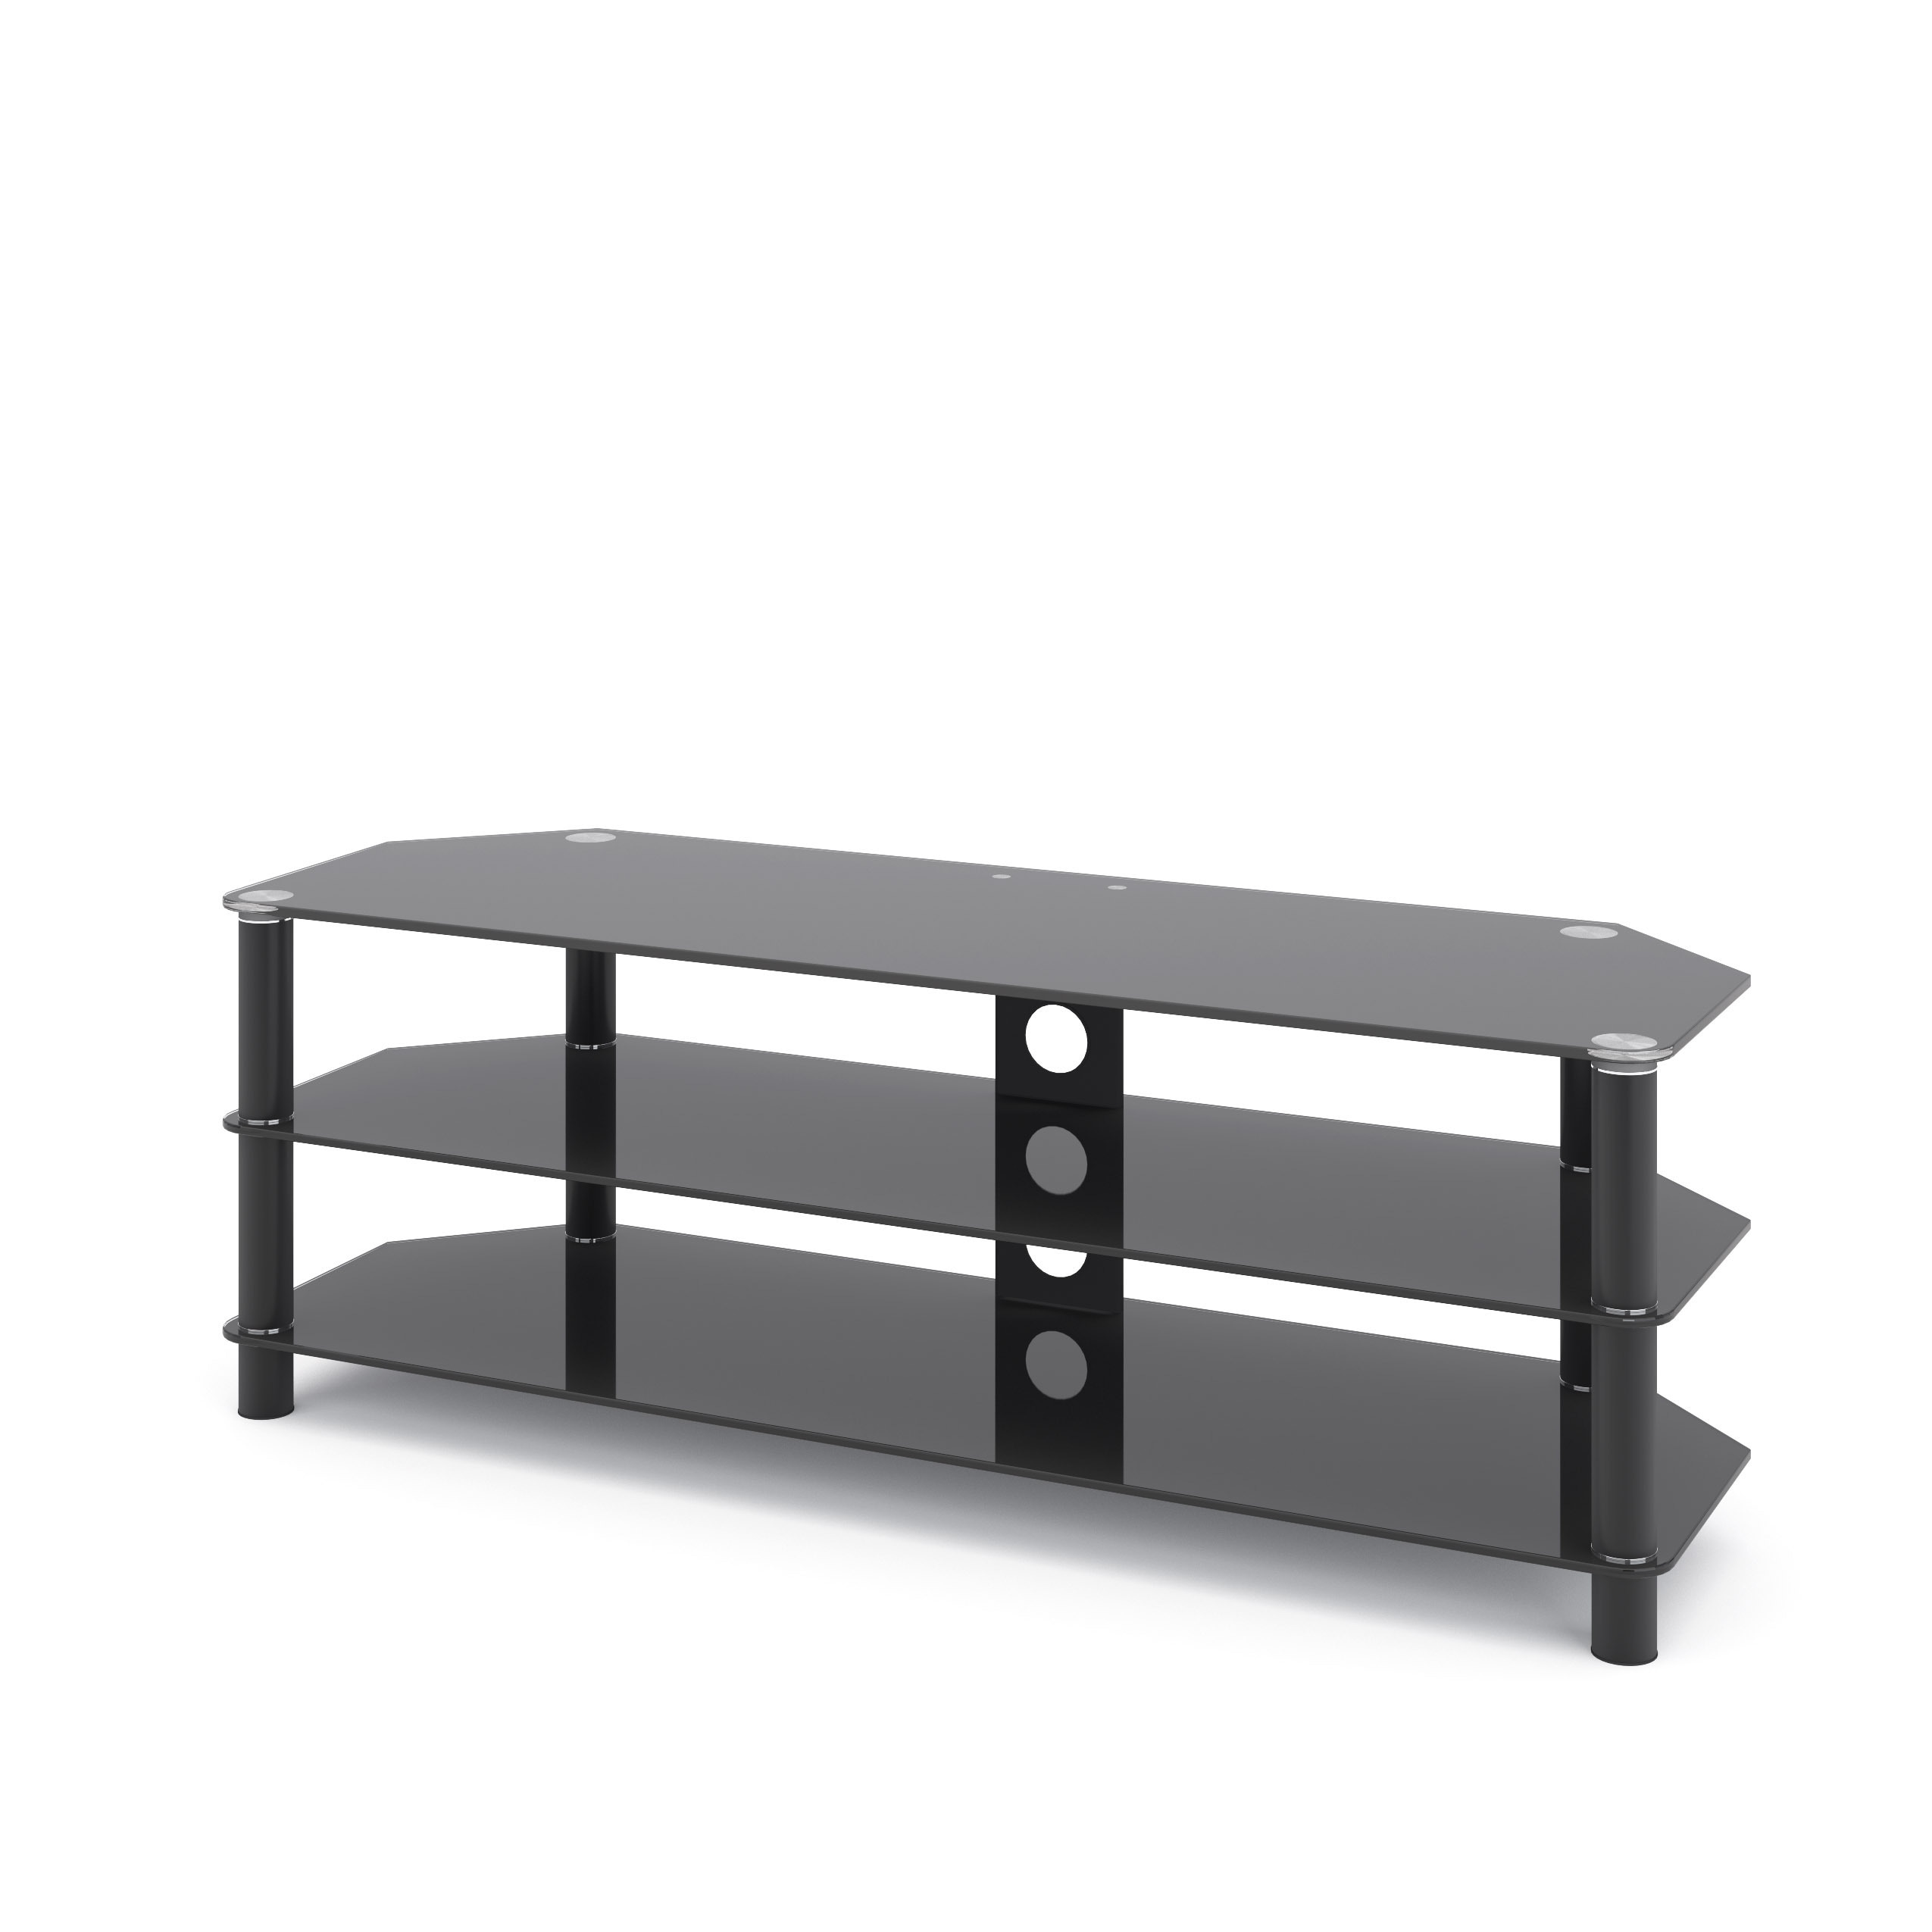 Corliving Tra 704 T Trinidad Black Gl Tv Stand Free Shipping Today 16596868